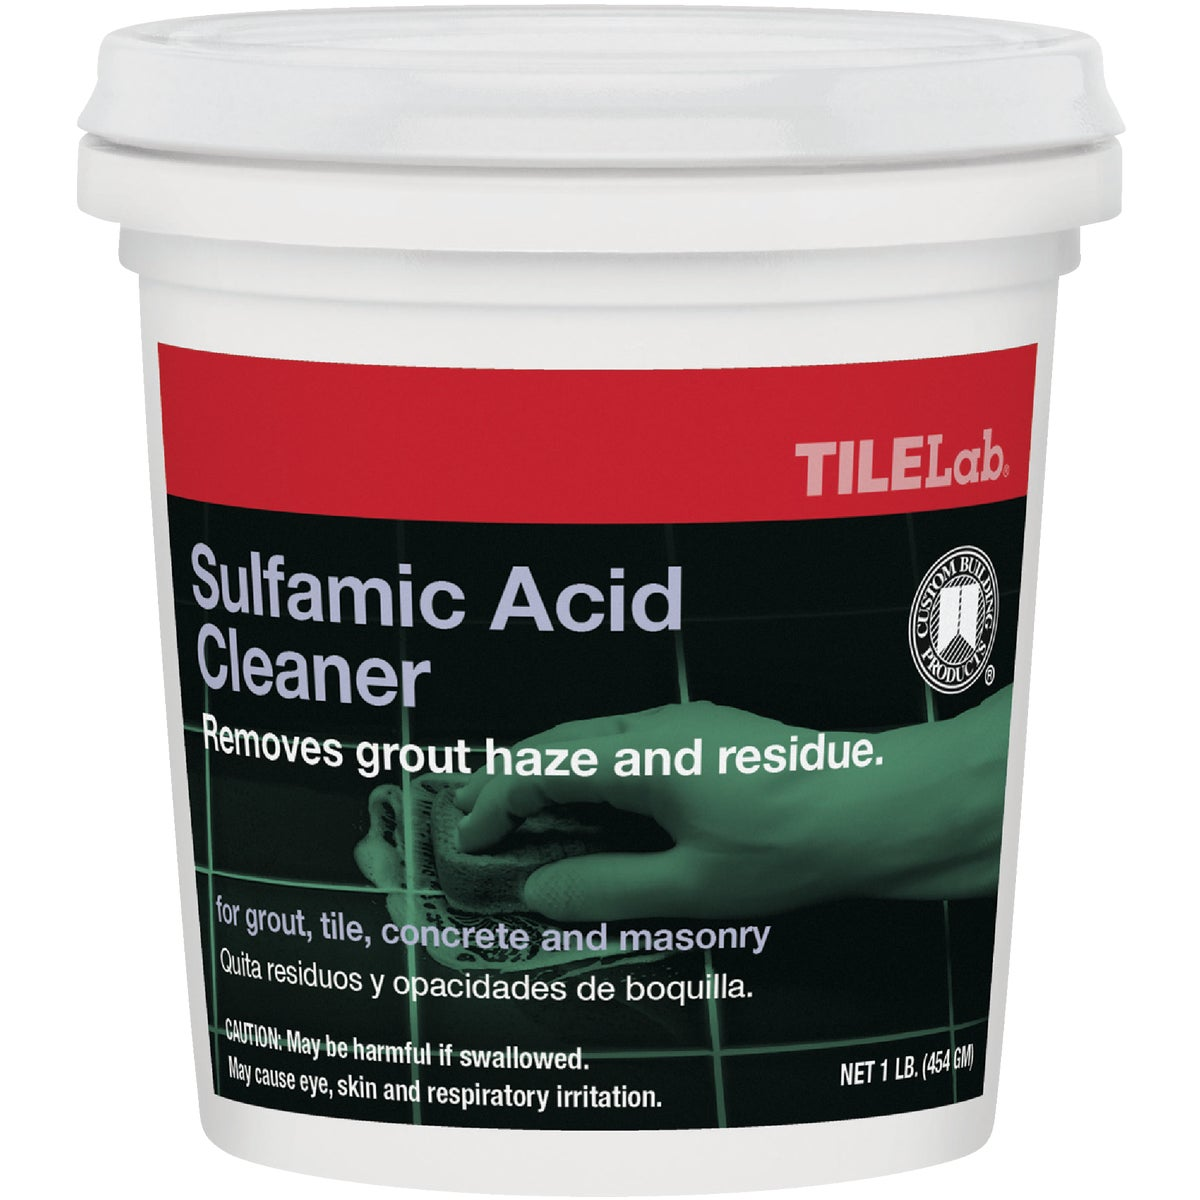 1LB SULFMIC ACID CLEANER - TLSACRA1 by Custom Building Prod